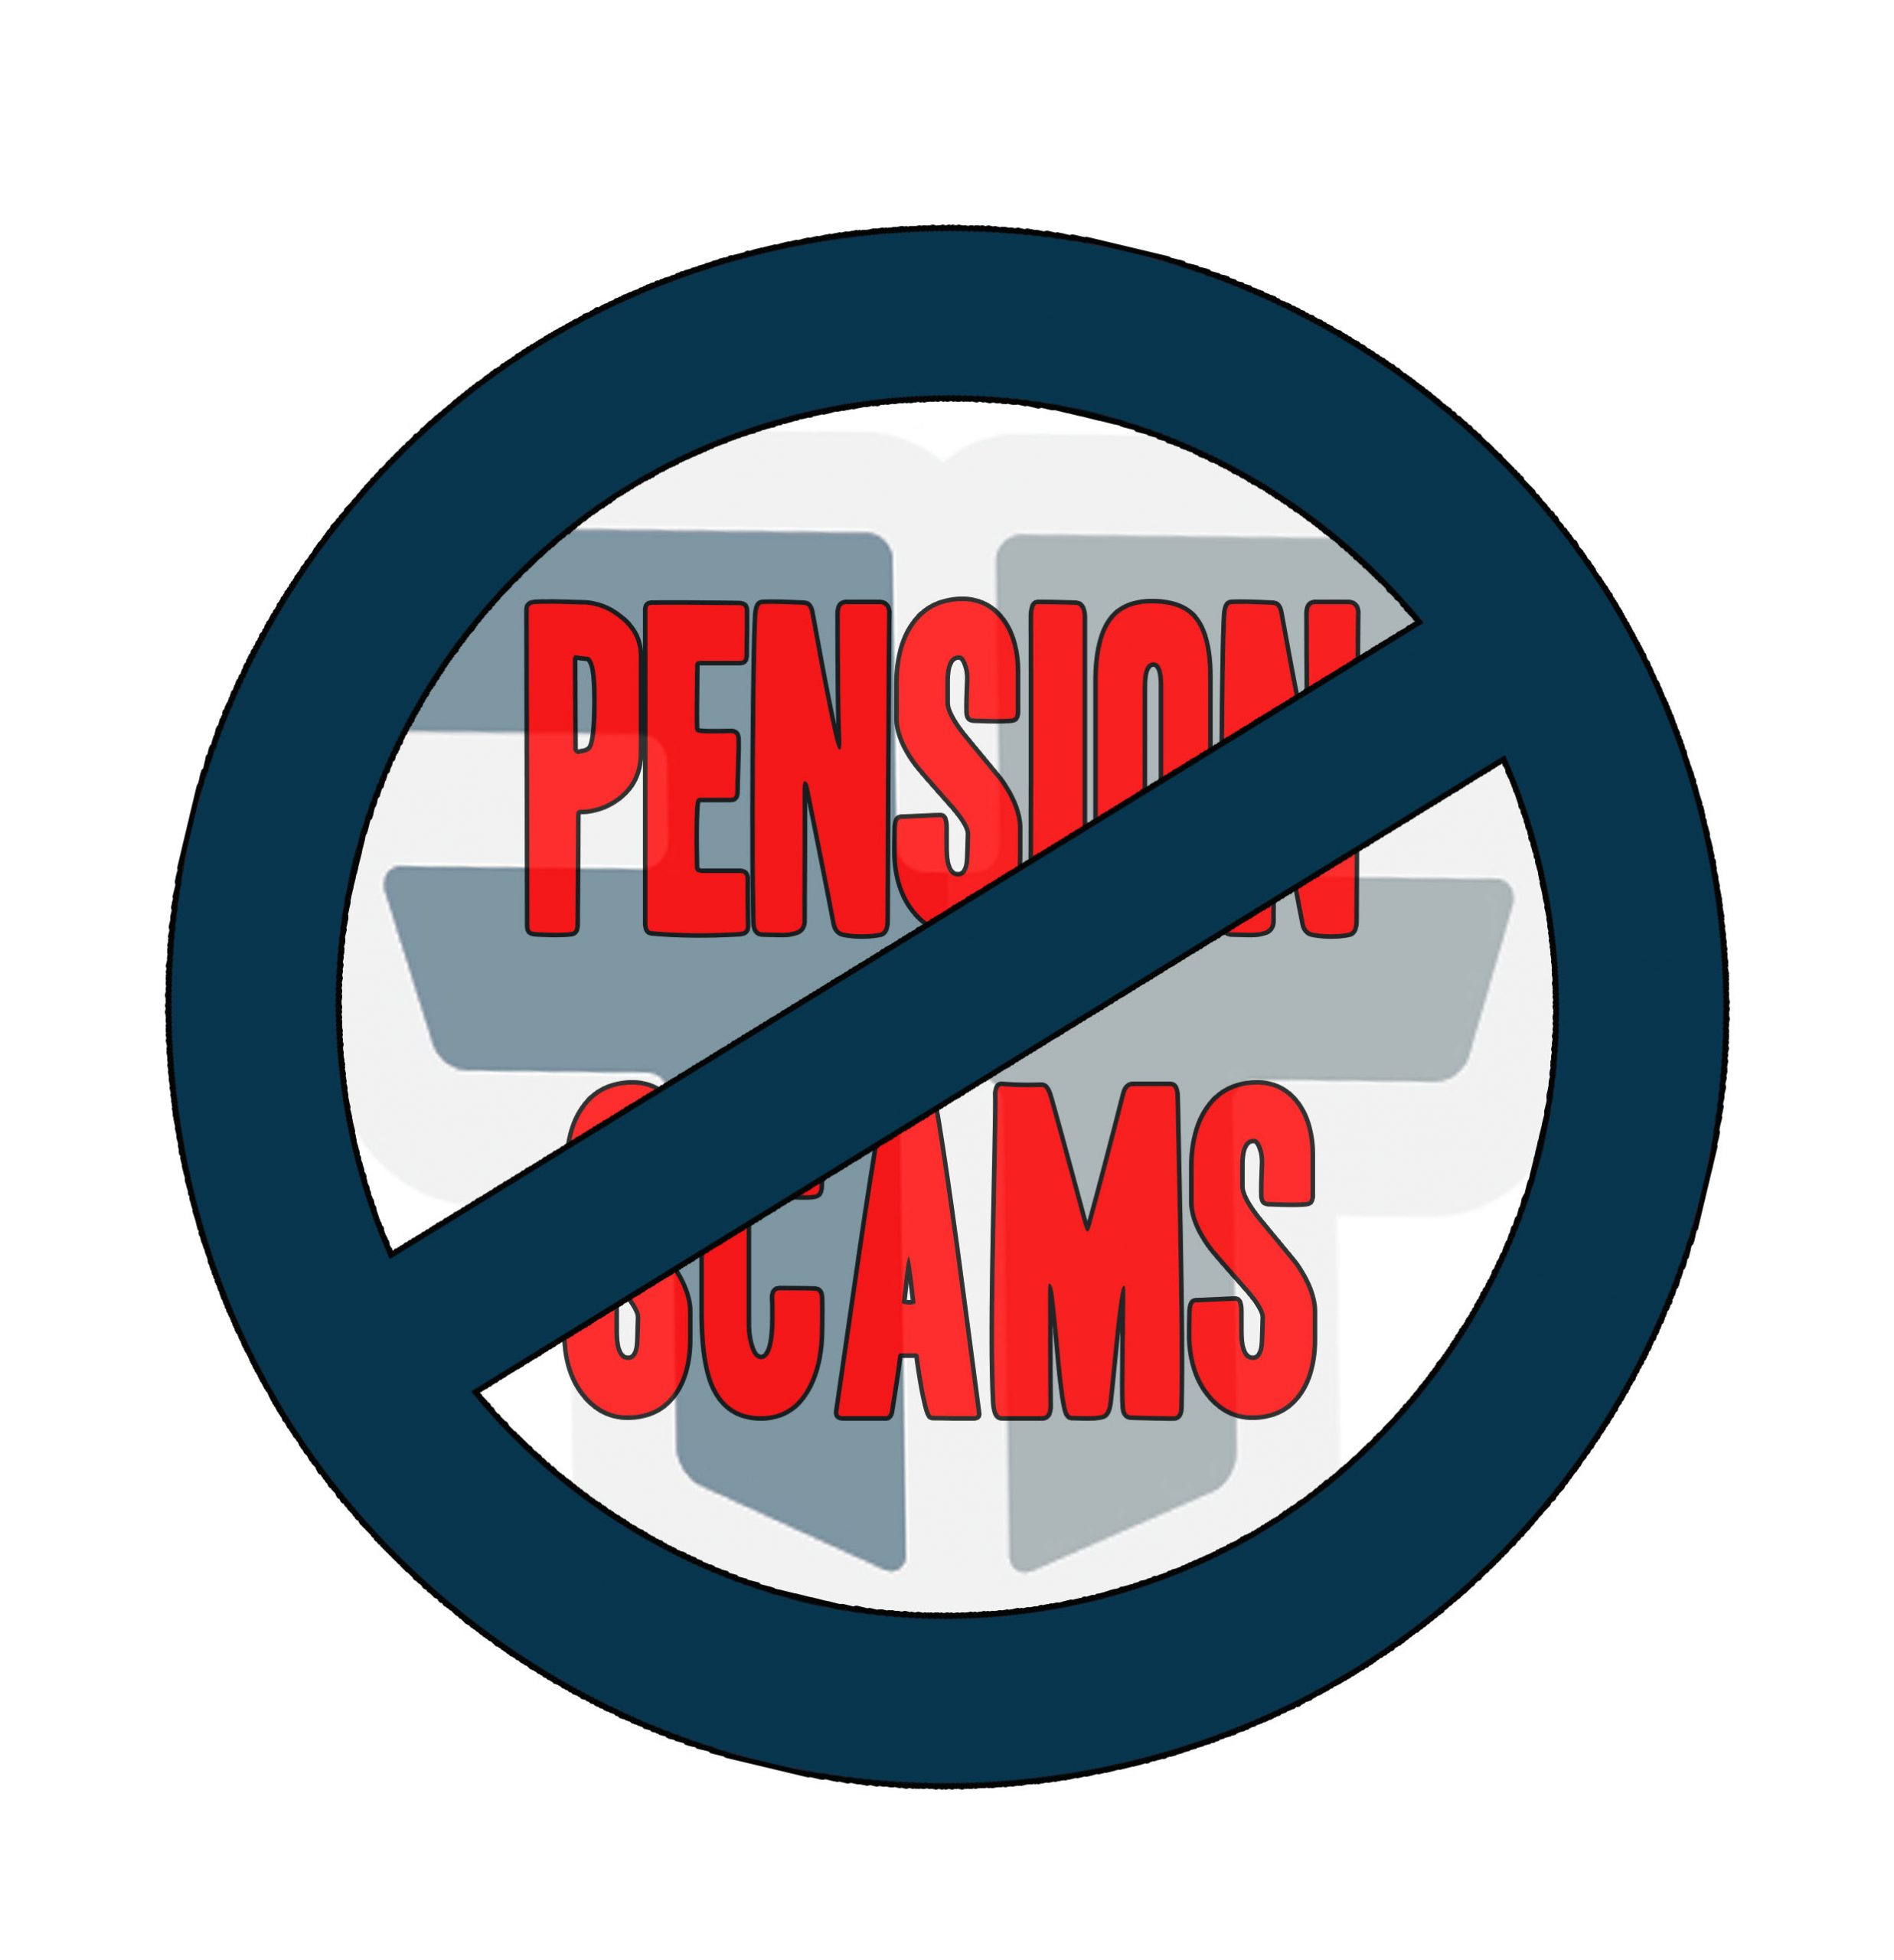 Pension scams (and the Corona-virus)